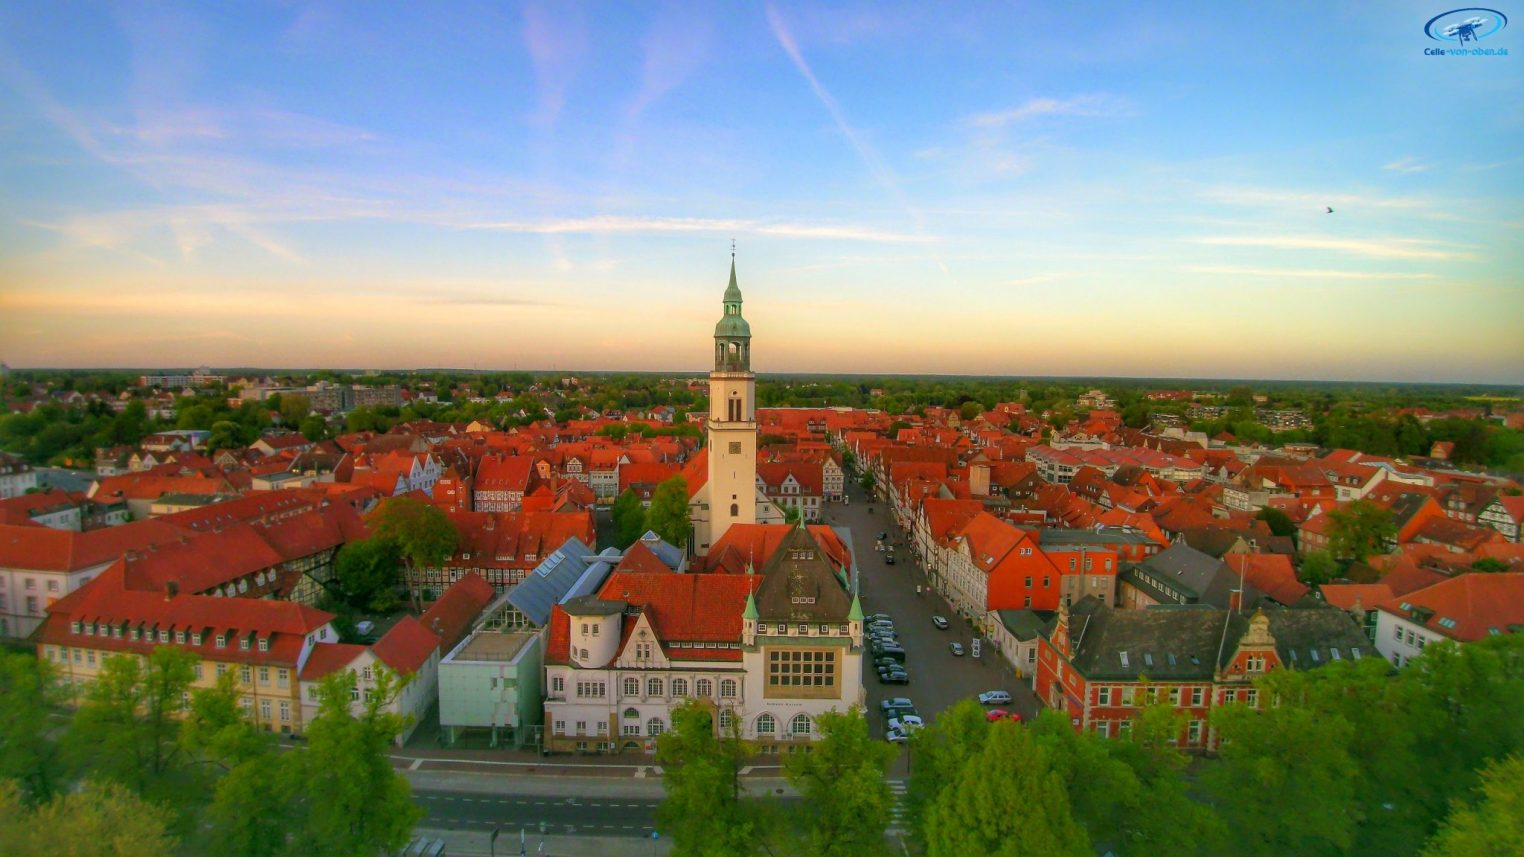 Celle Stadtkirche am Abend